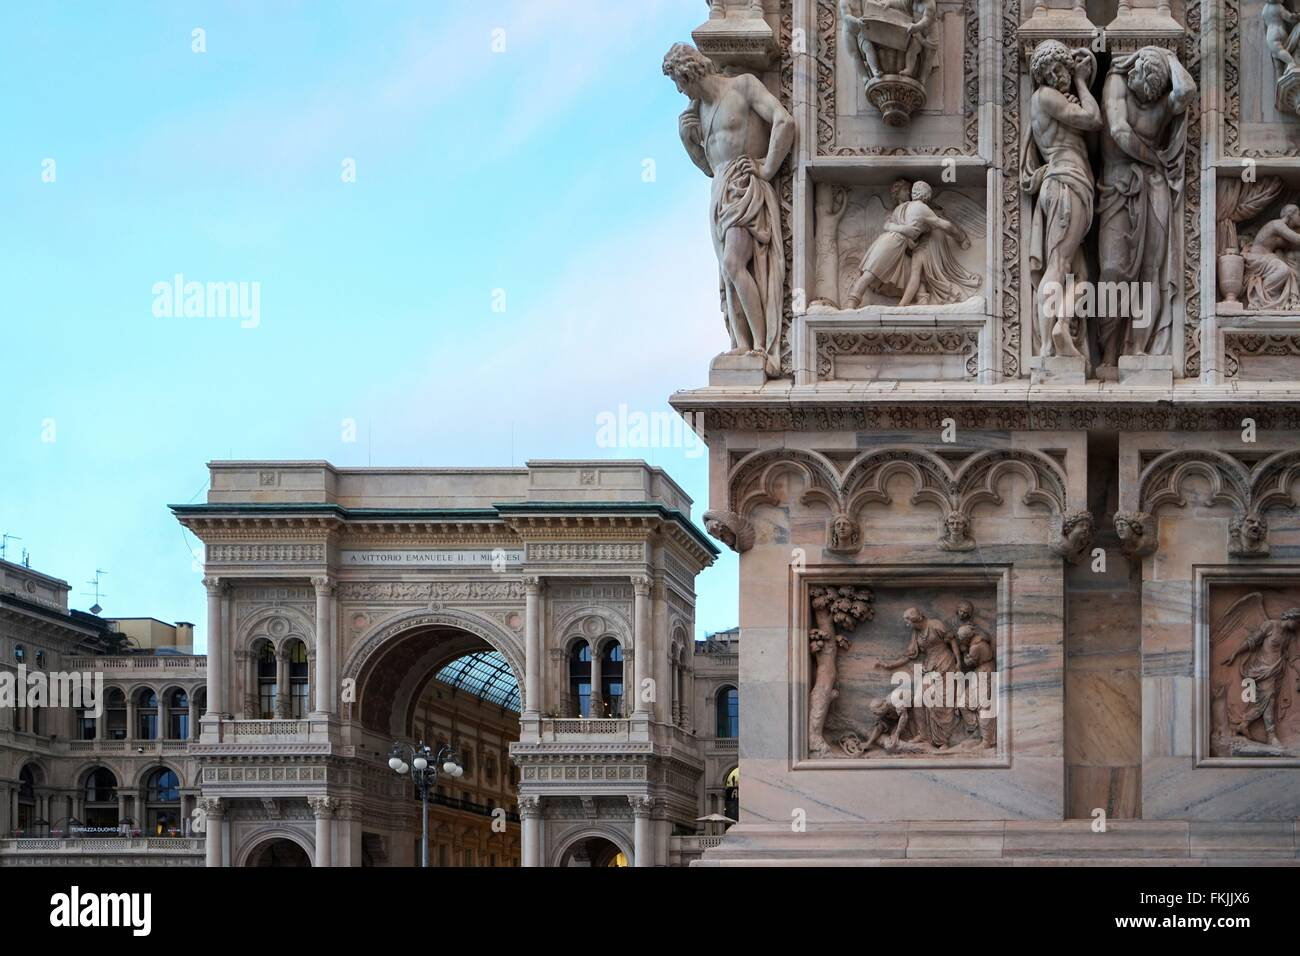 Italy: Main entrance of Galleria Vittorio Emanuele II, seen from Piazza del Duomo in Milan. Photo from 3. March Stock Photo